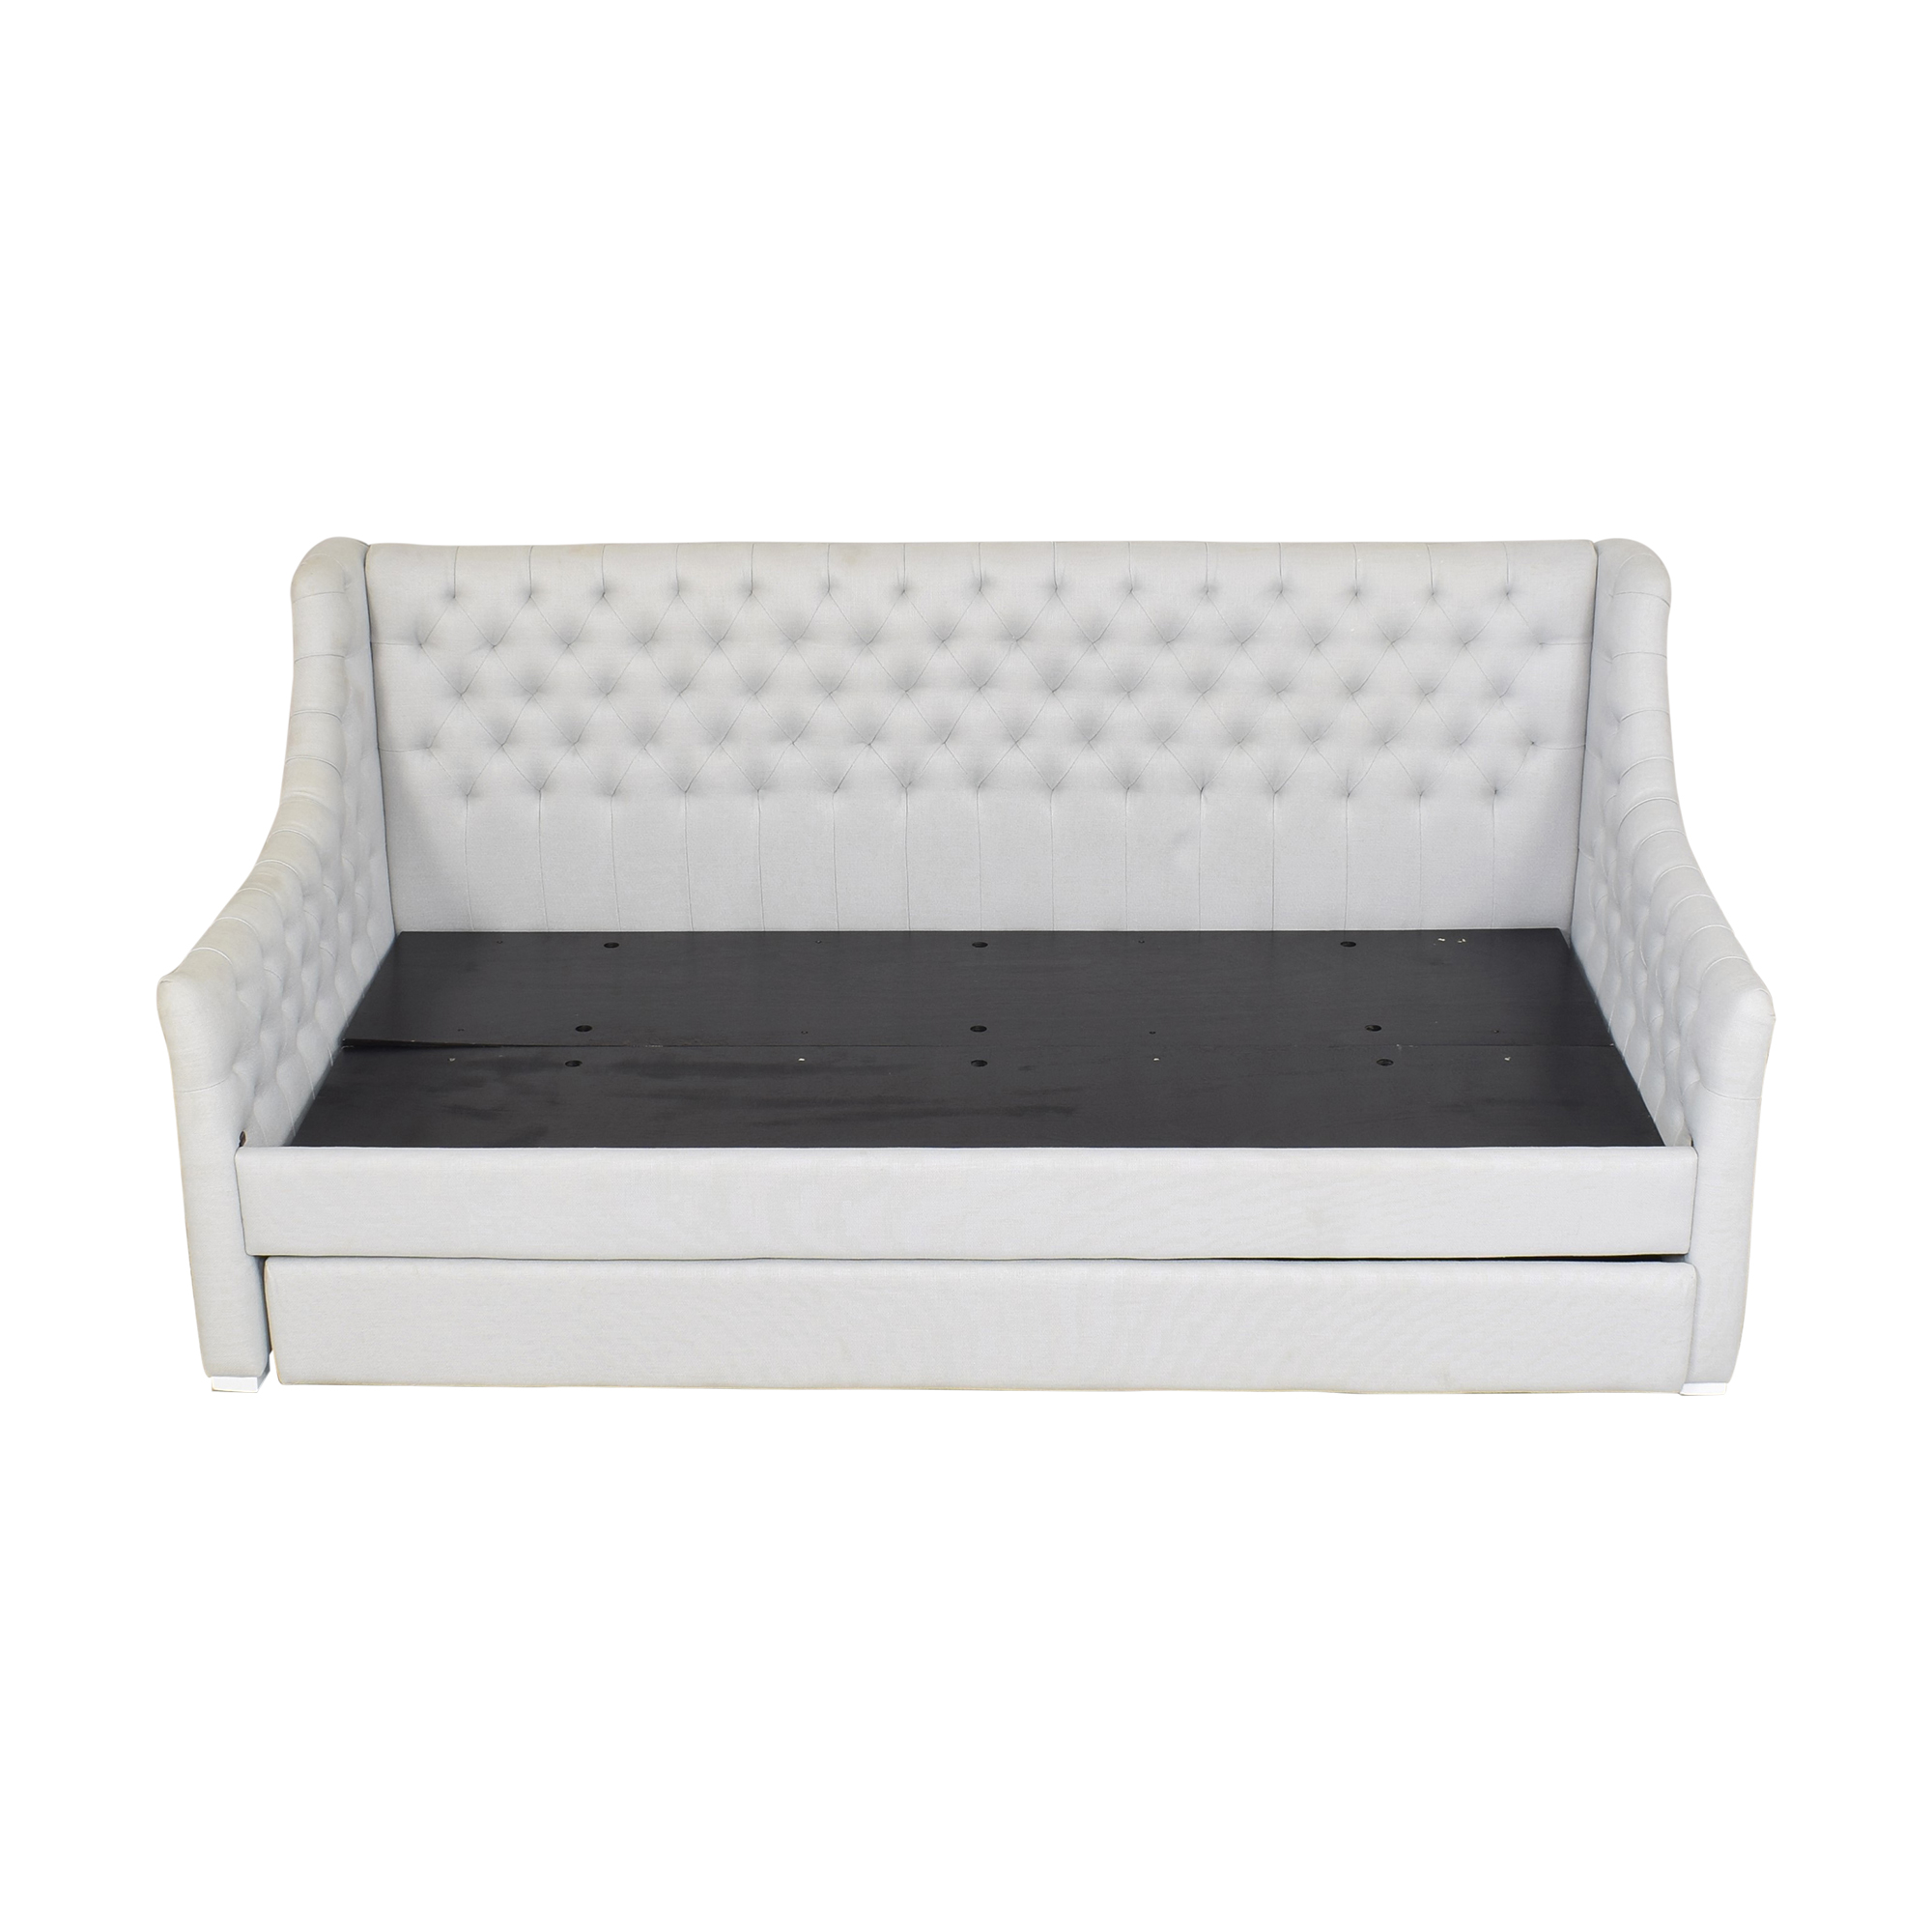 RH Baby & Child RH Baby & Child Devyn Tufted Twin Daybed with Trundle dimensions